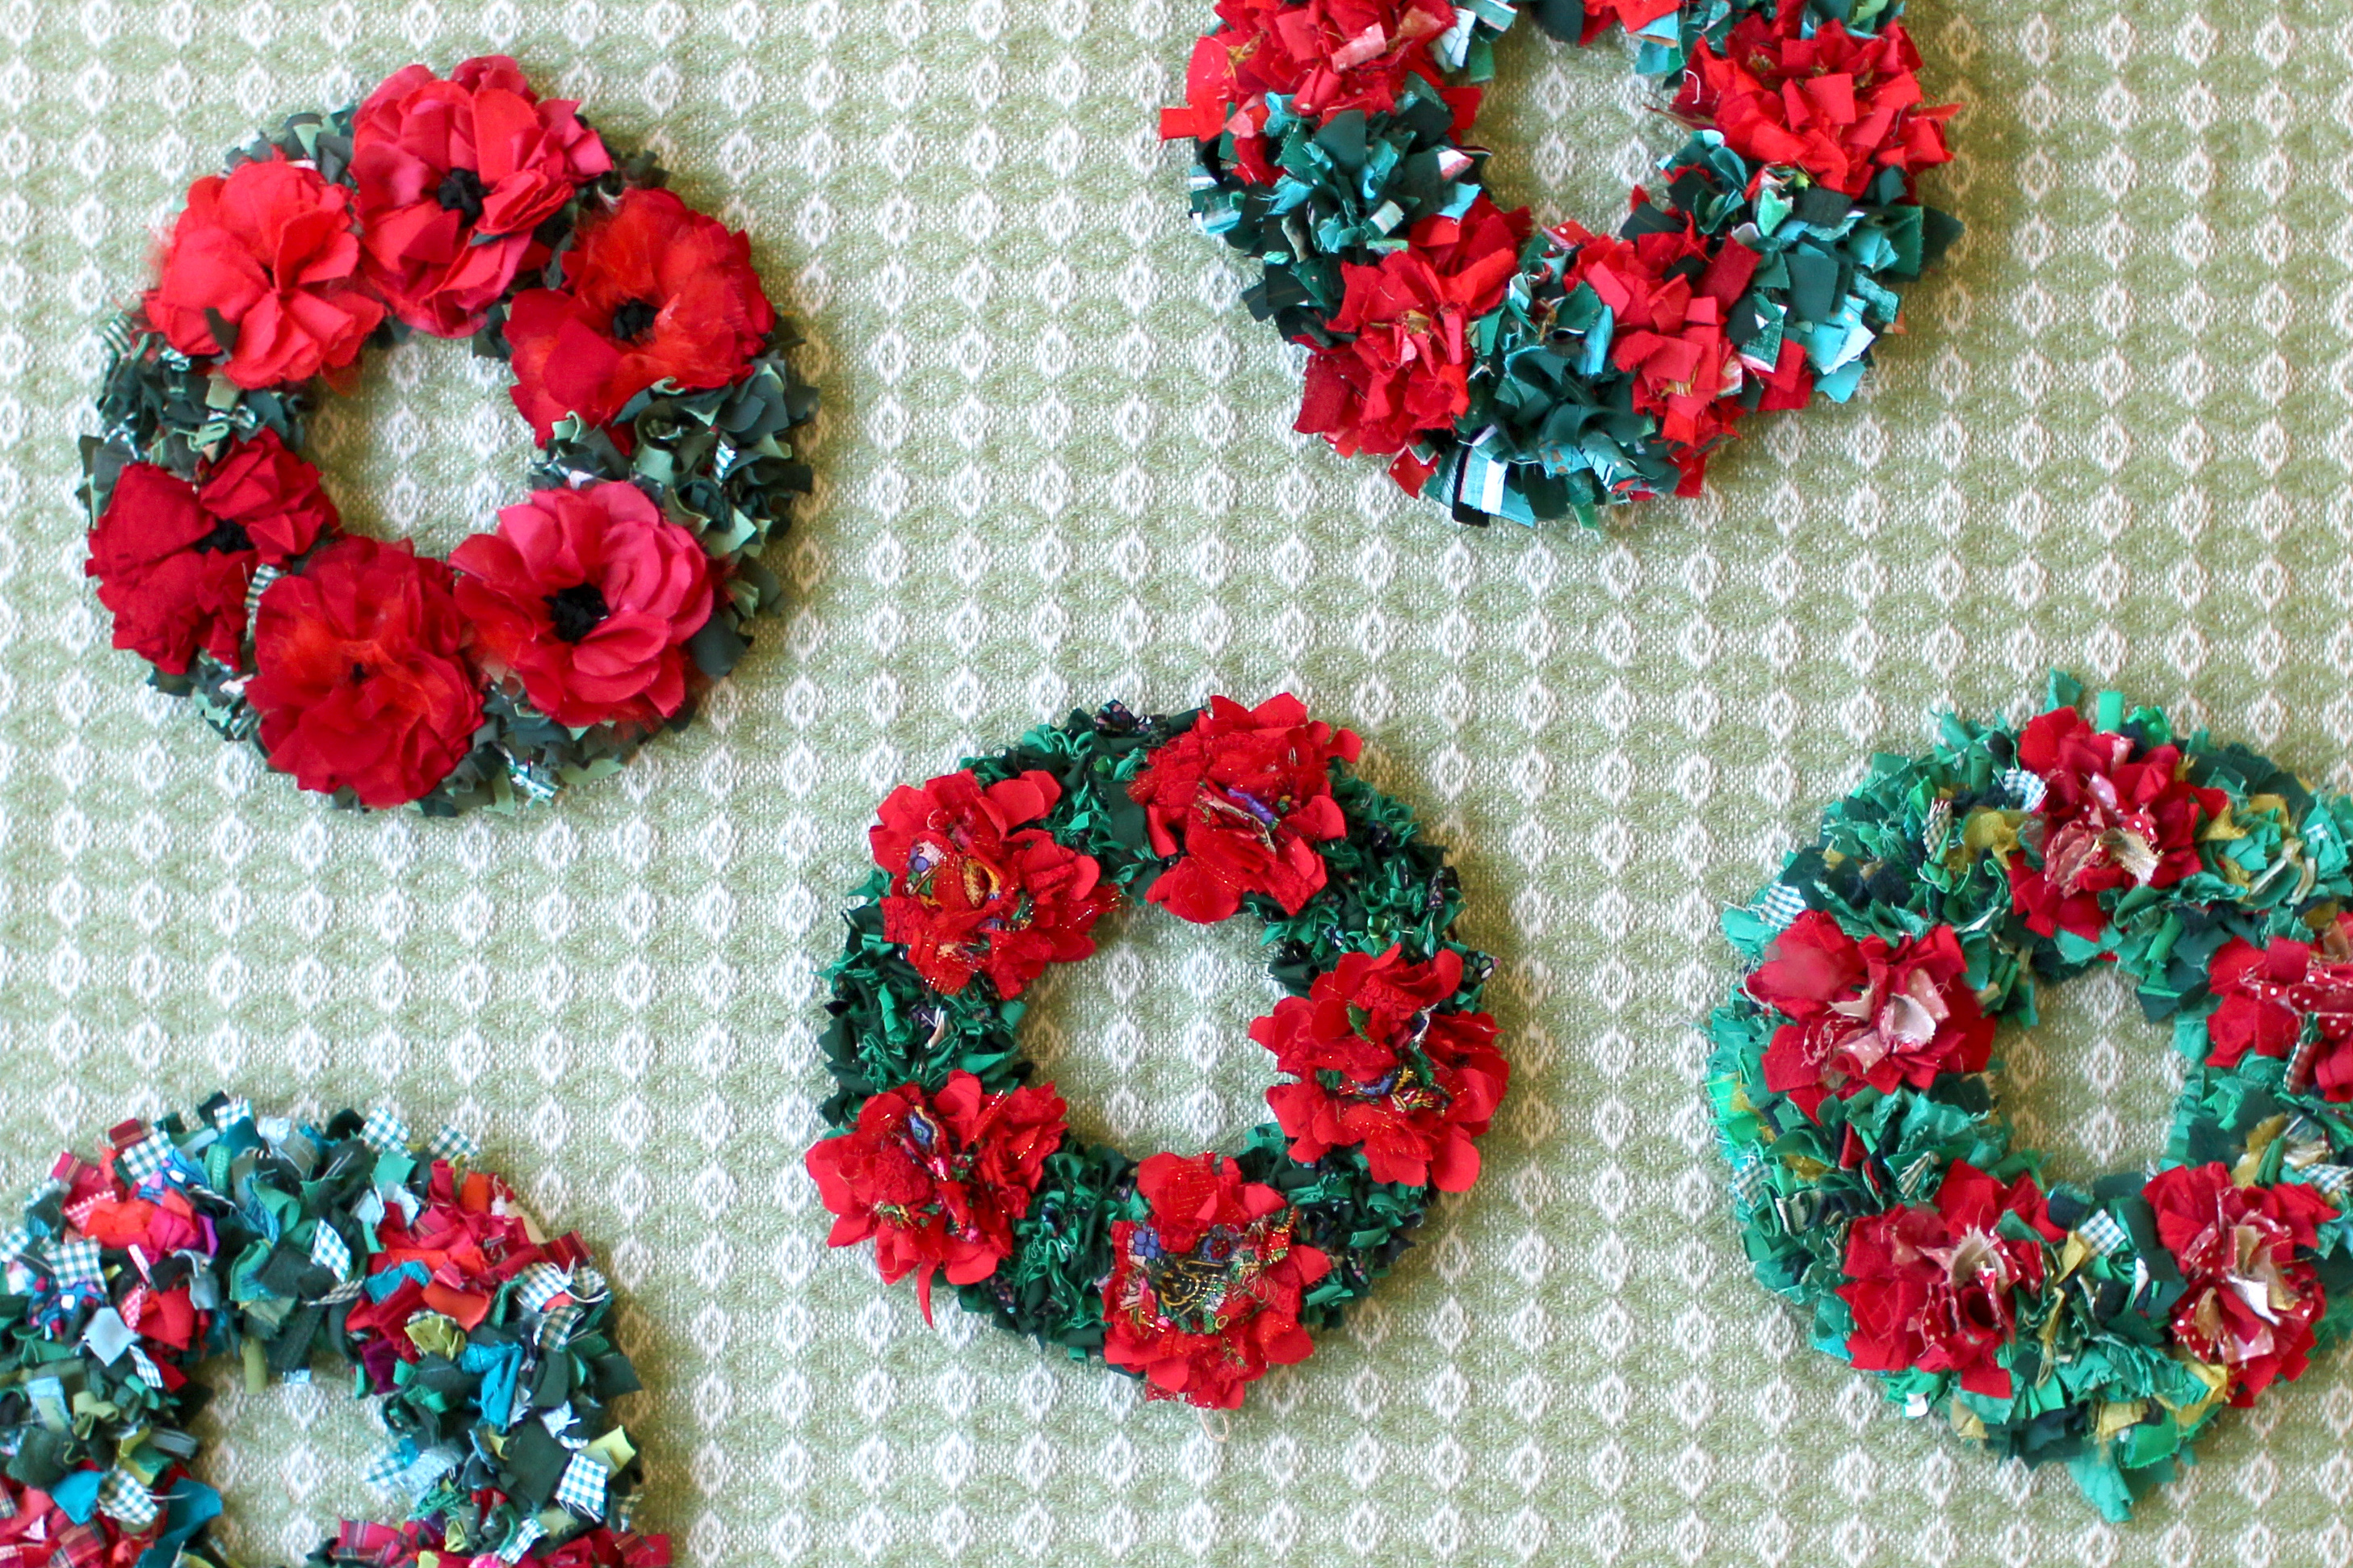 Ragged Life Rag Rug Wreaths made using recycled clothing and textile waste for Christmas